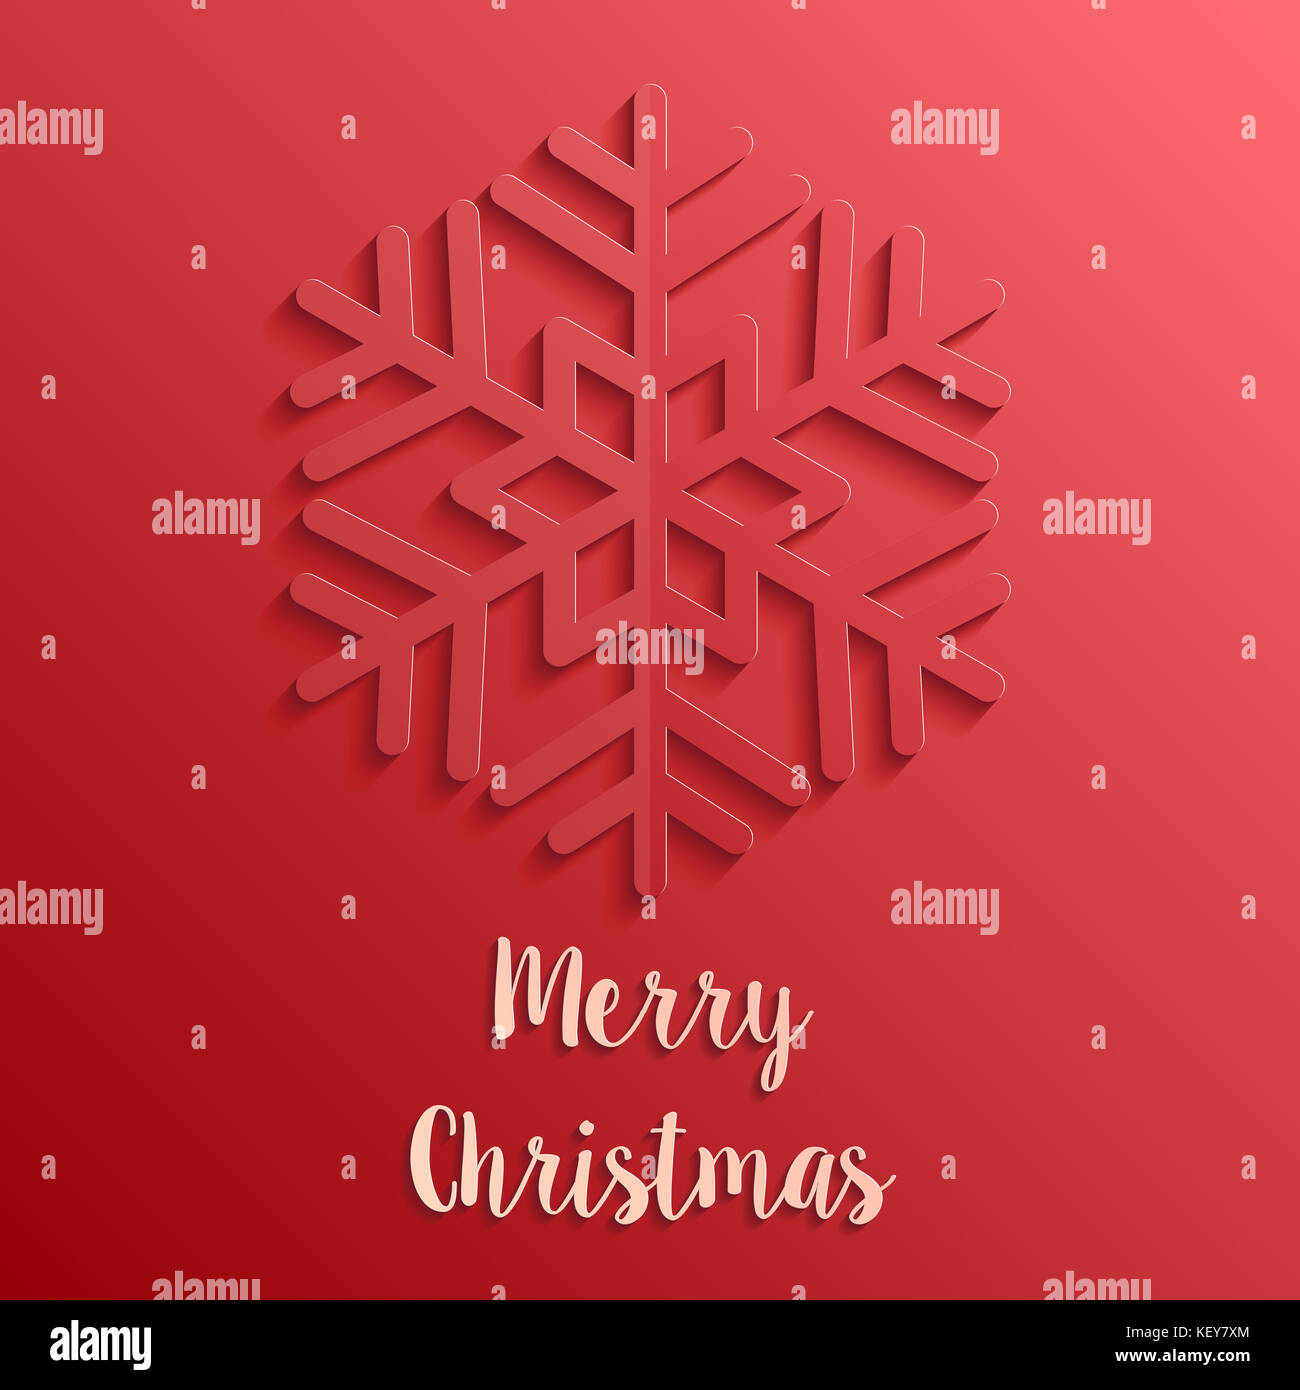 red paper cut style merry christmas card Stock Photo: 164097436 - Alamy